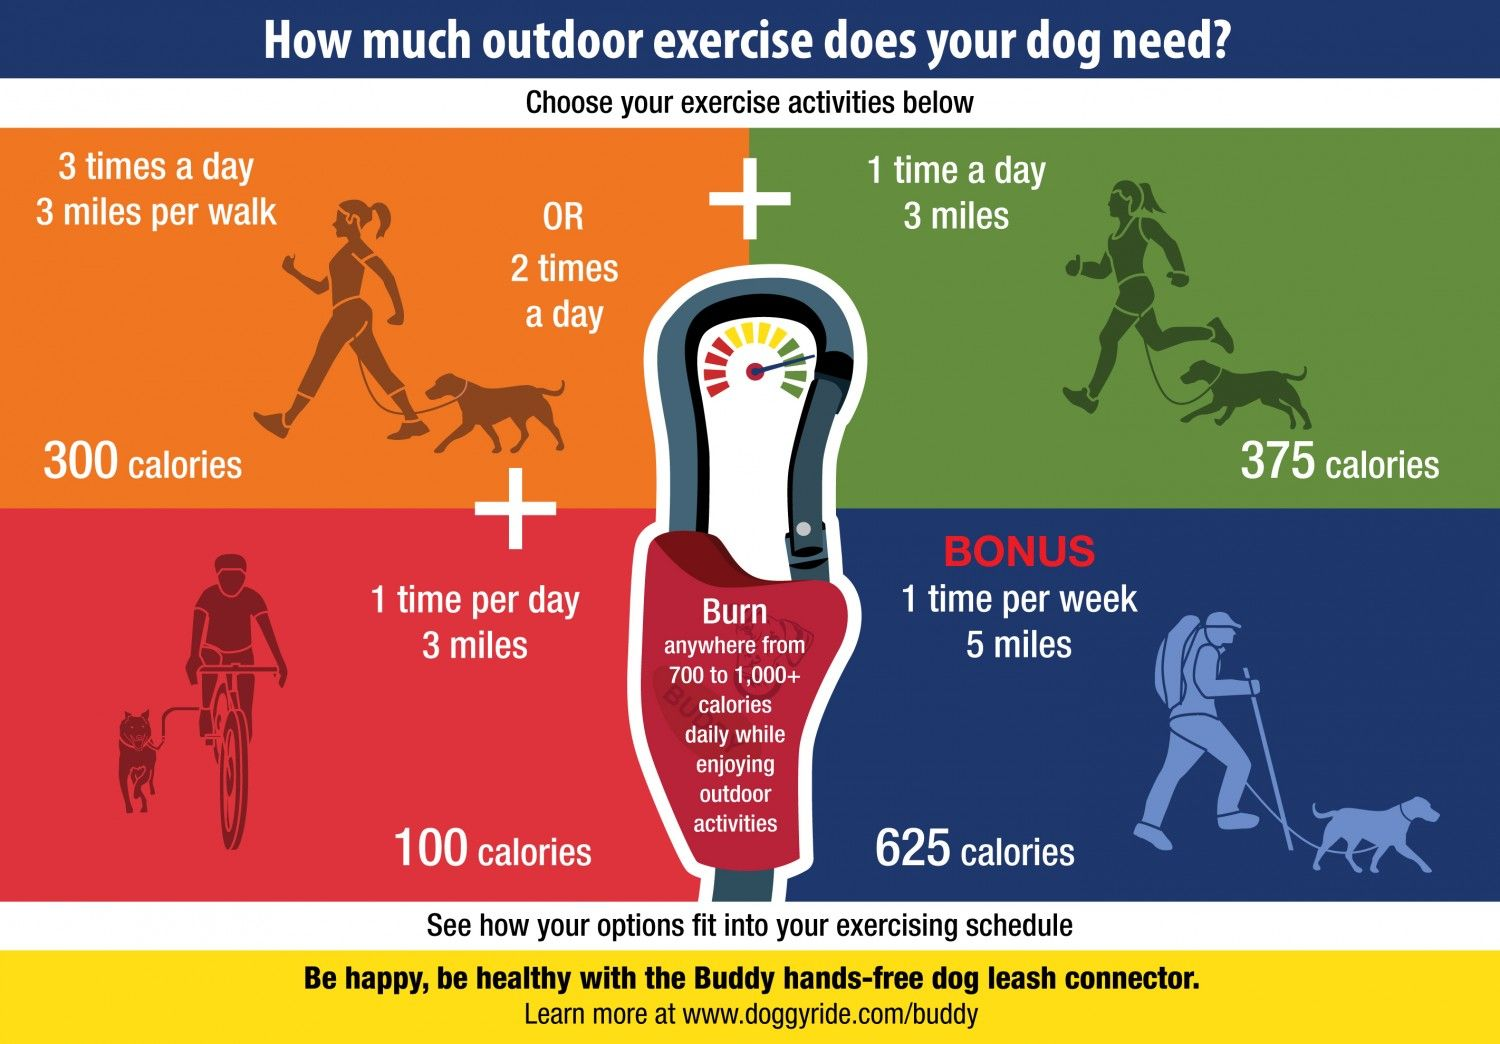 How Much Outdoor Exercise Does Your Dog Need? Visual.ly